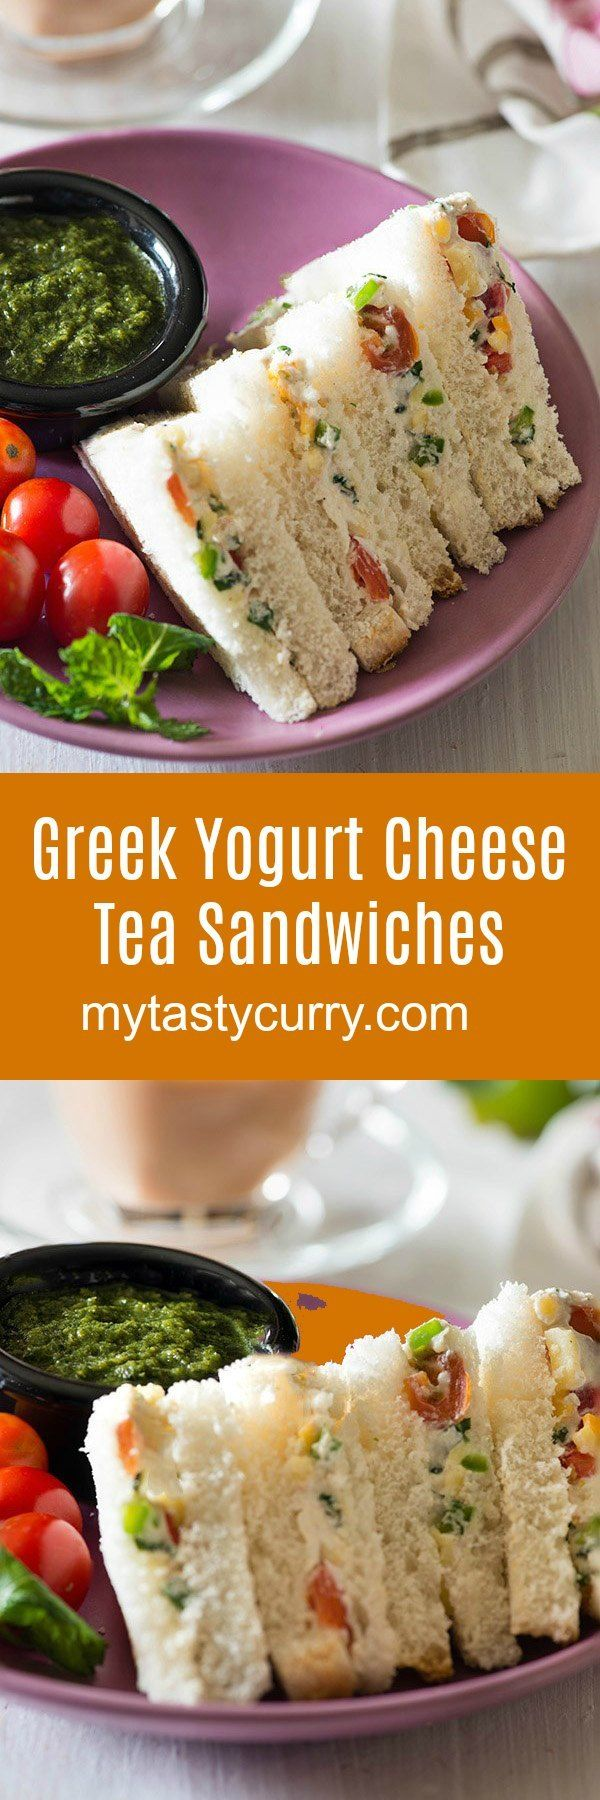 Delicious and easy Curd Sandwich recipe, with cheese and veggies in a flavorful seasoning. Curd Cheese and Veggie sandwichis aPerfect and easy sandwich for breakfast, high tea or to pack in a lunchbox.